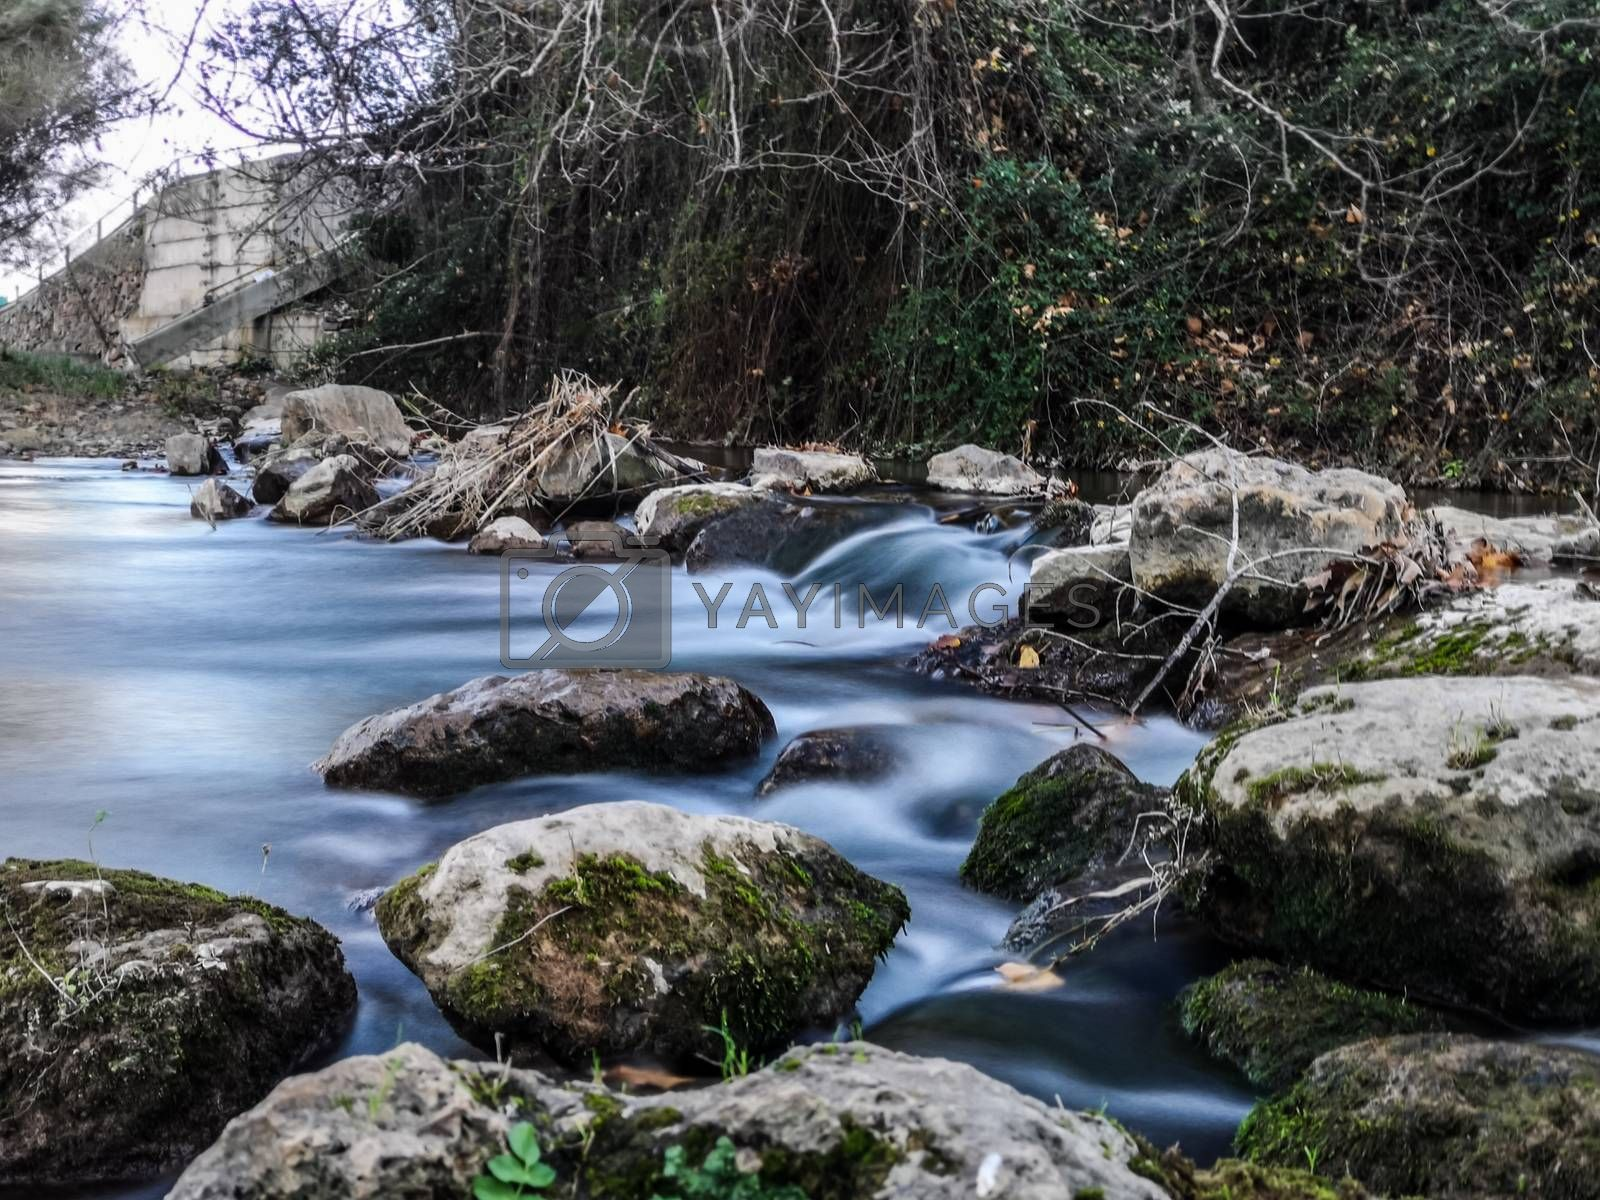 Palancia River waters flowing through the rocks by Barriolo82